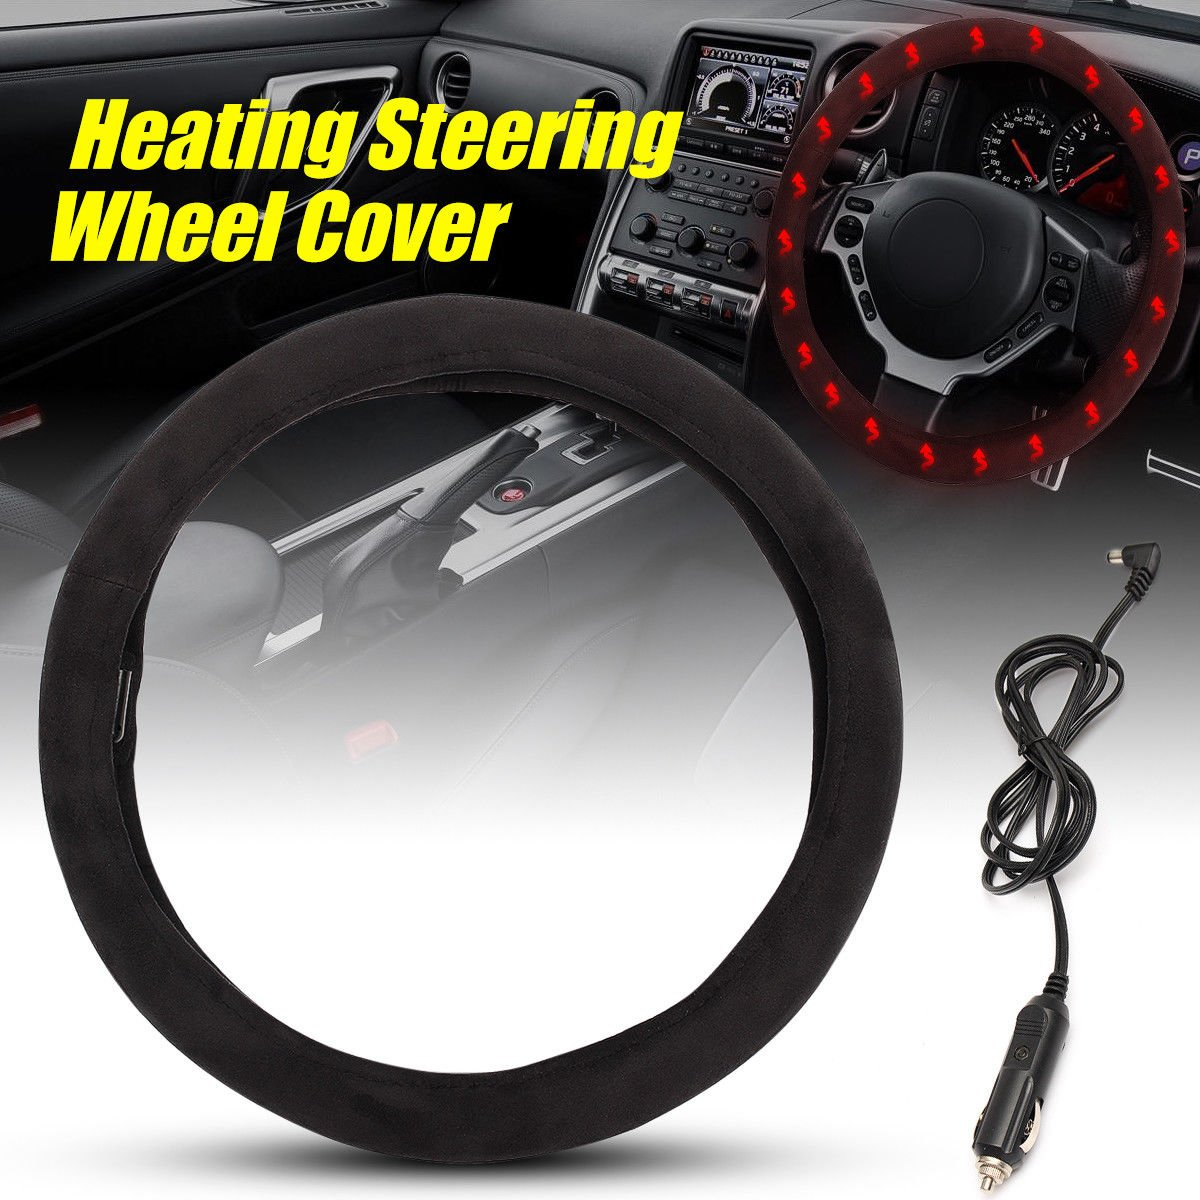 Black Steering Wheel Protector Cover Huole1 Goodream Car Heated Steering Wheel Cover Keep Comfortable and Warm While Driving